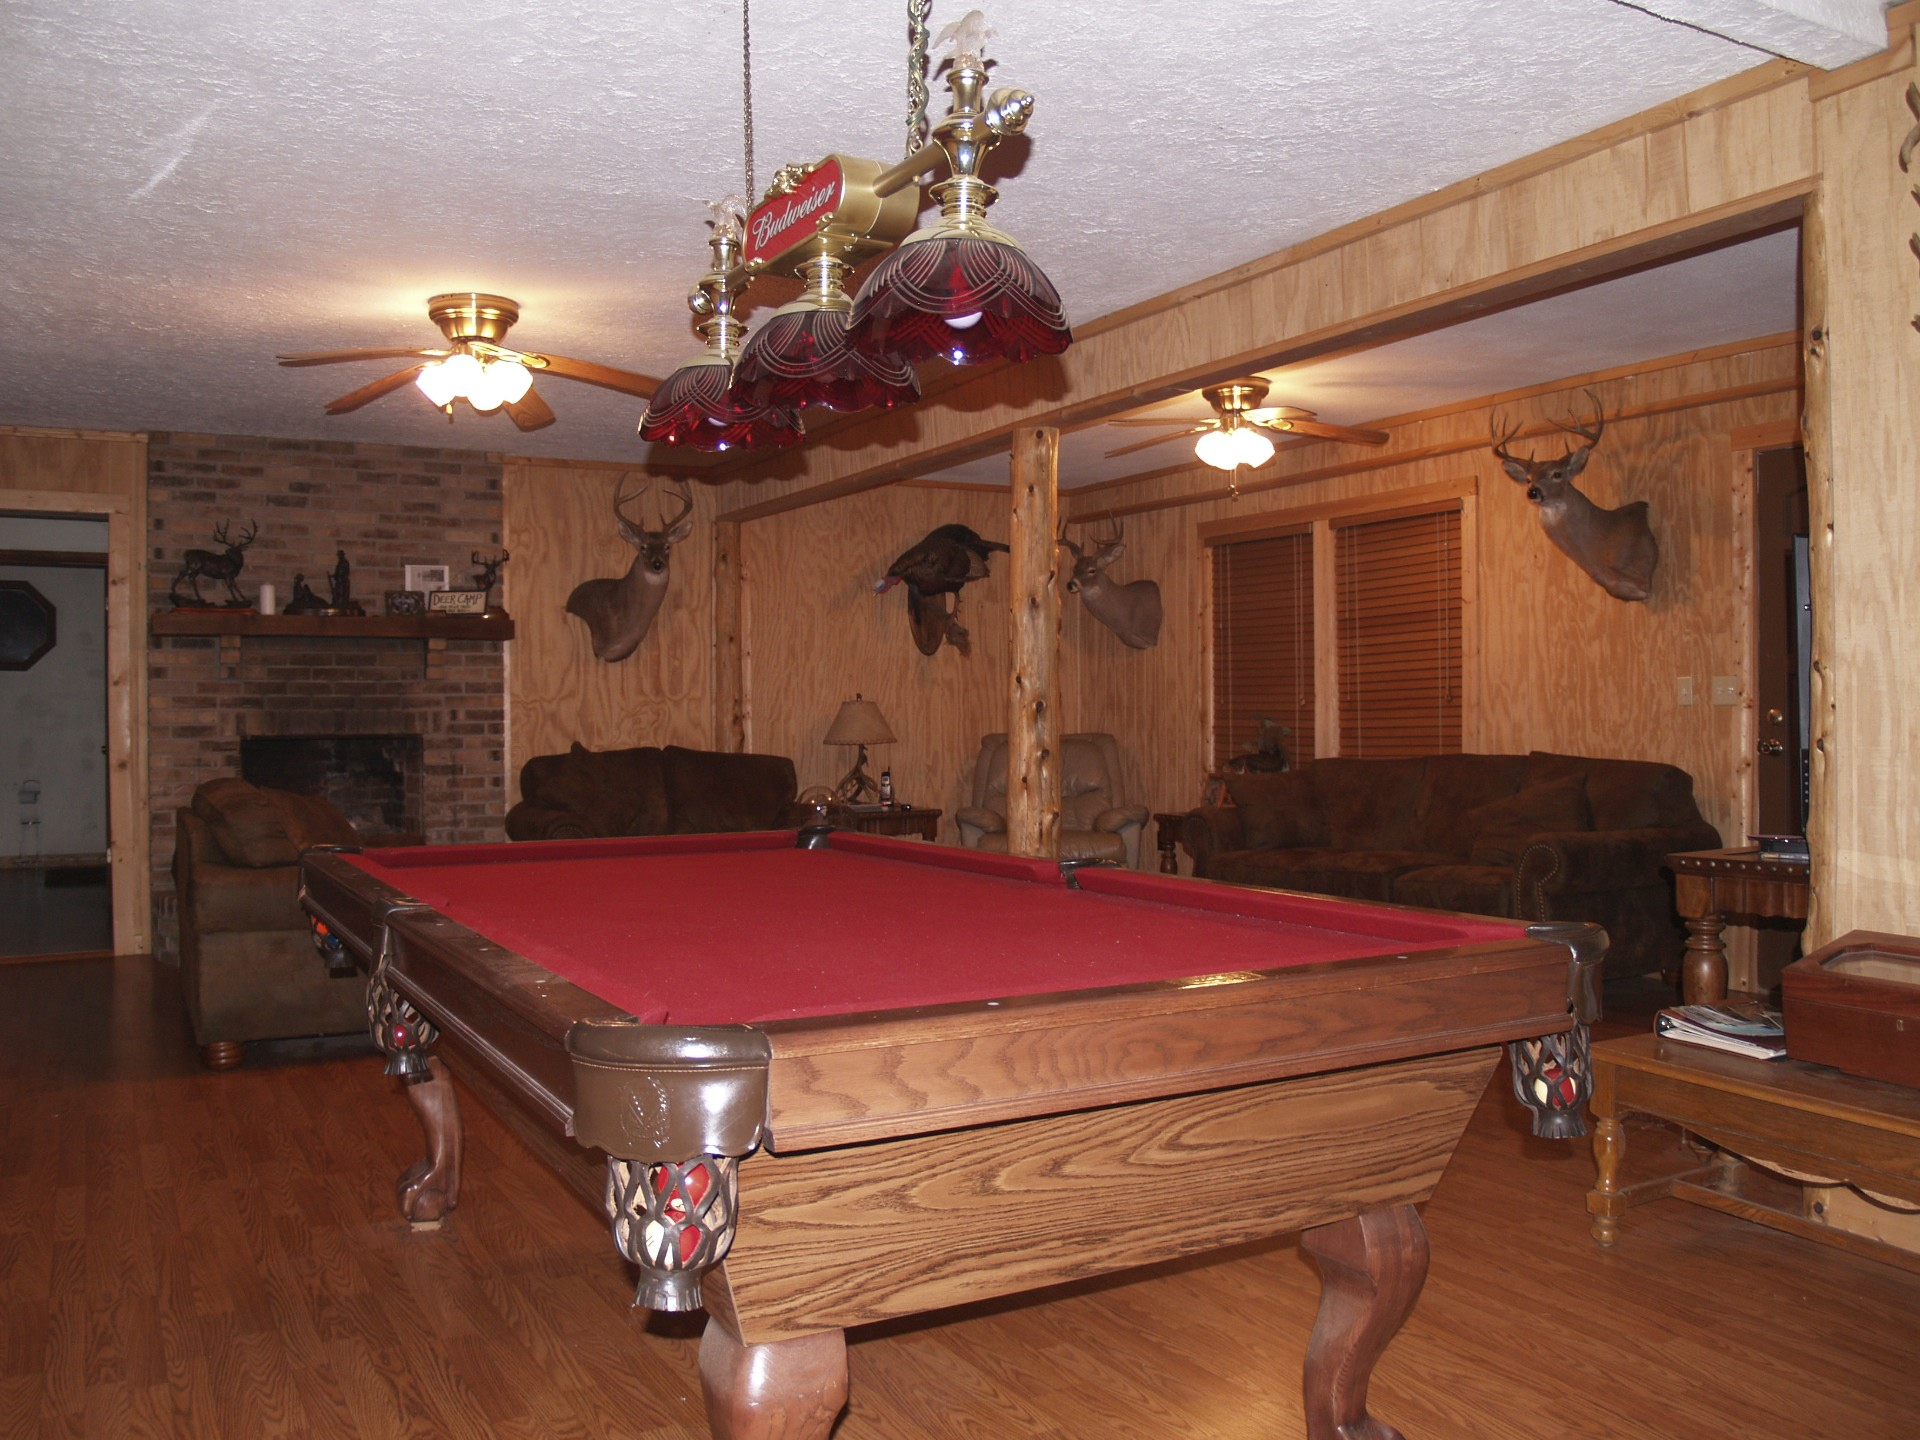 The Pool Table And Living Room Area Life In Camo Shenanigans - Buckhorn pool table